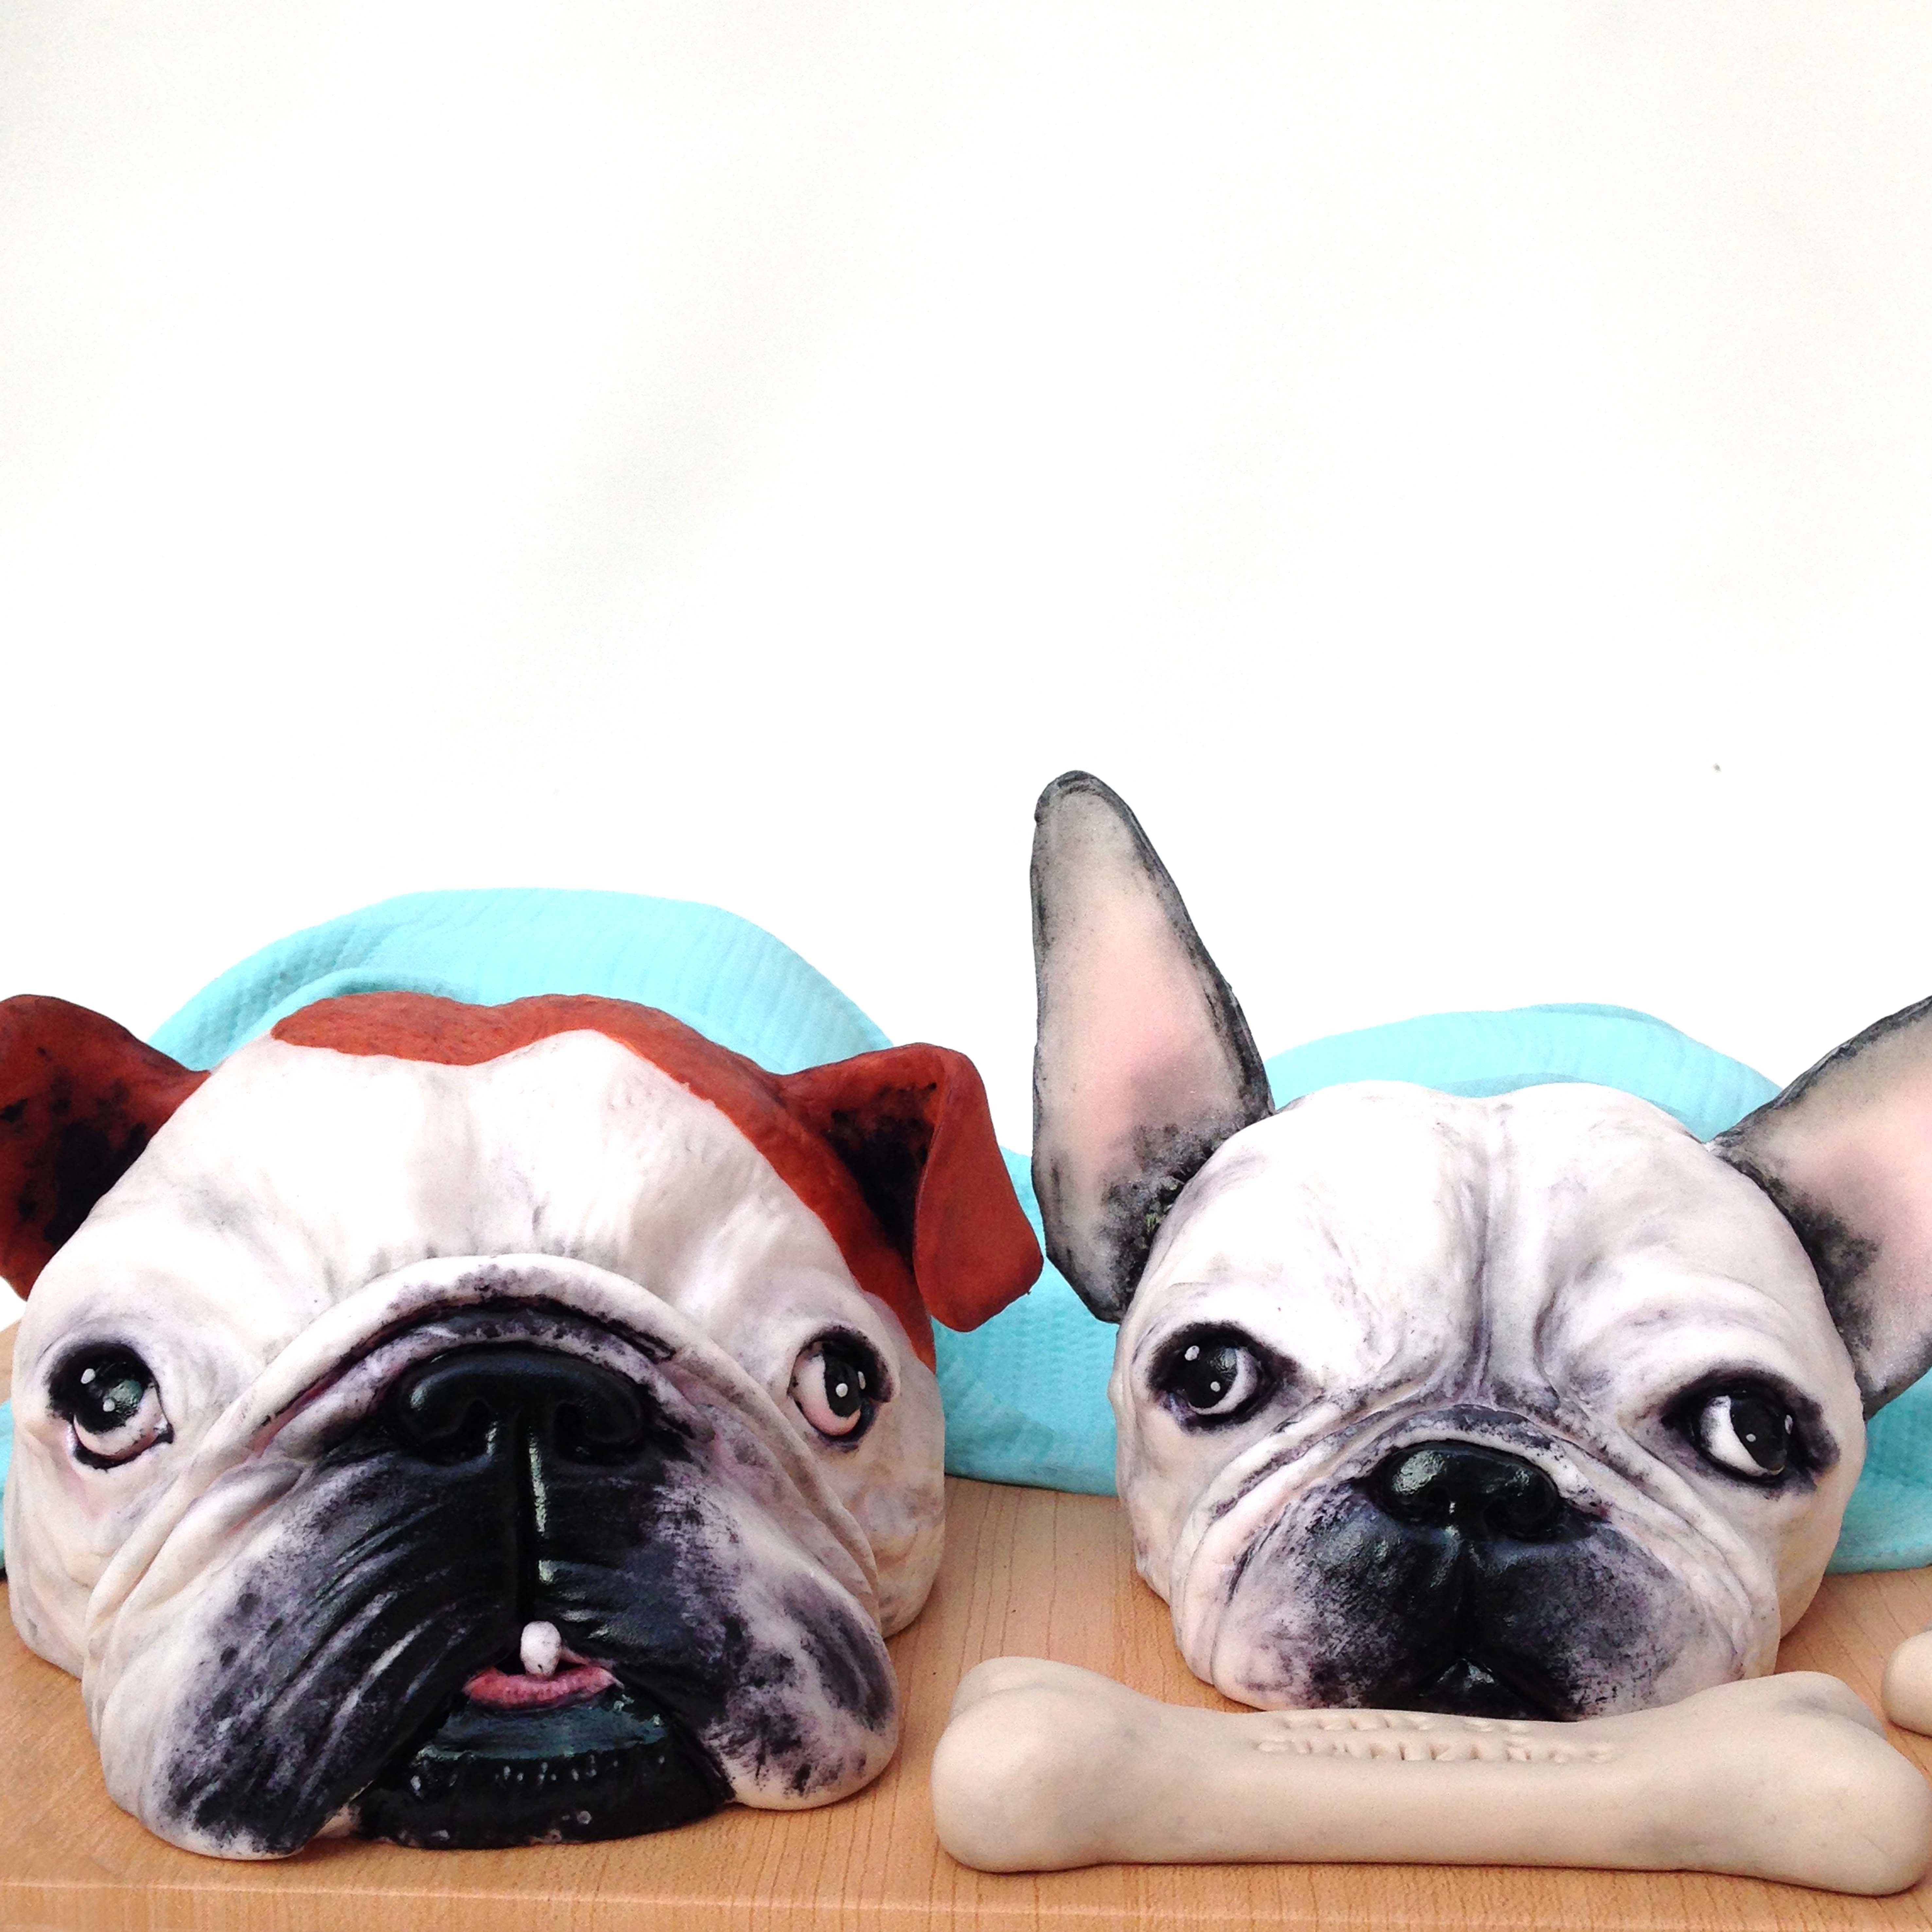 Sculpted Pug Dogs